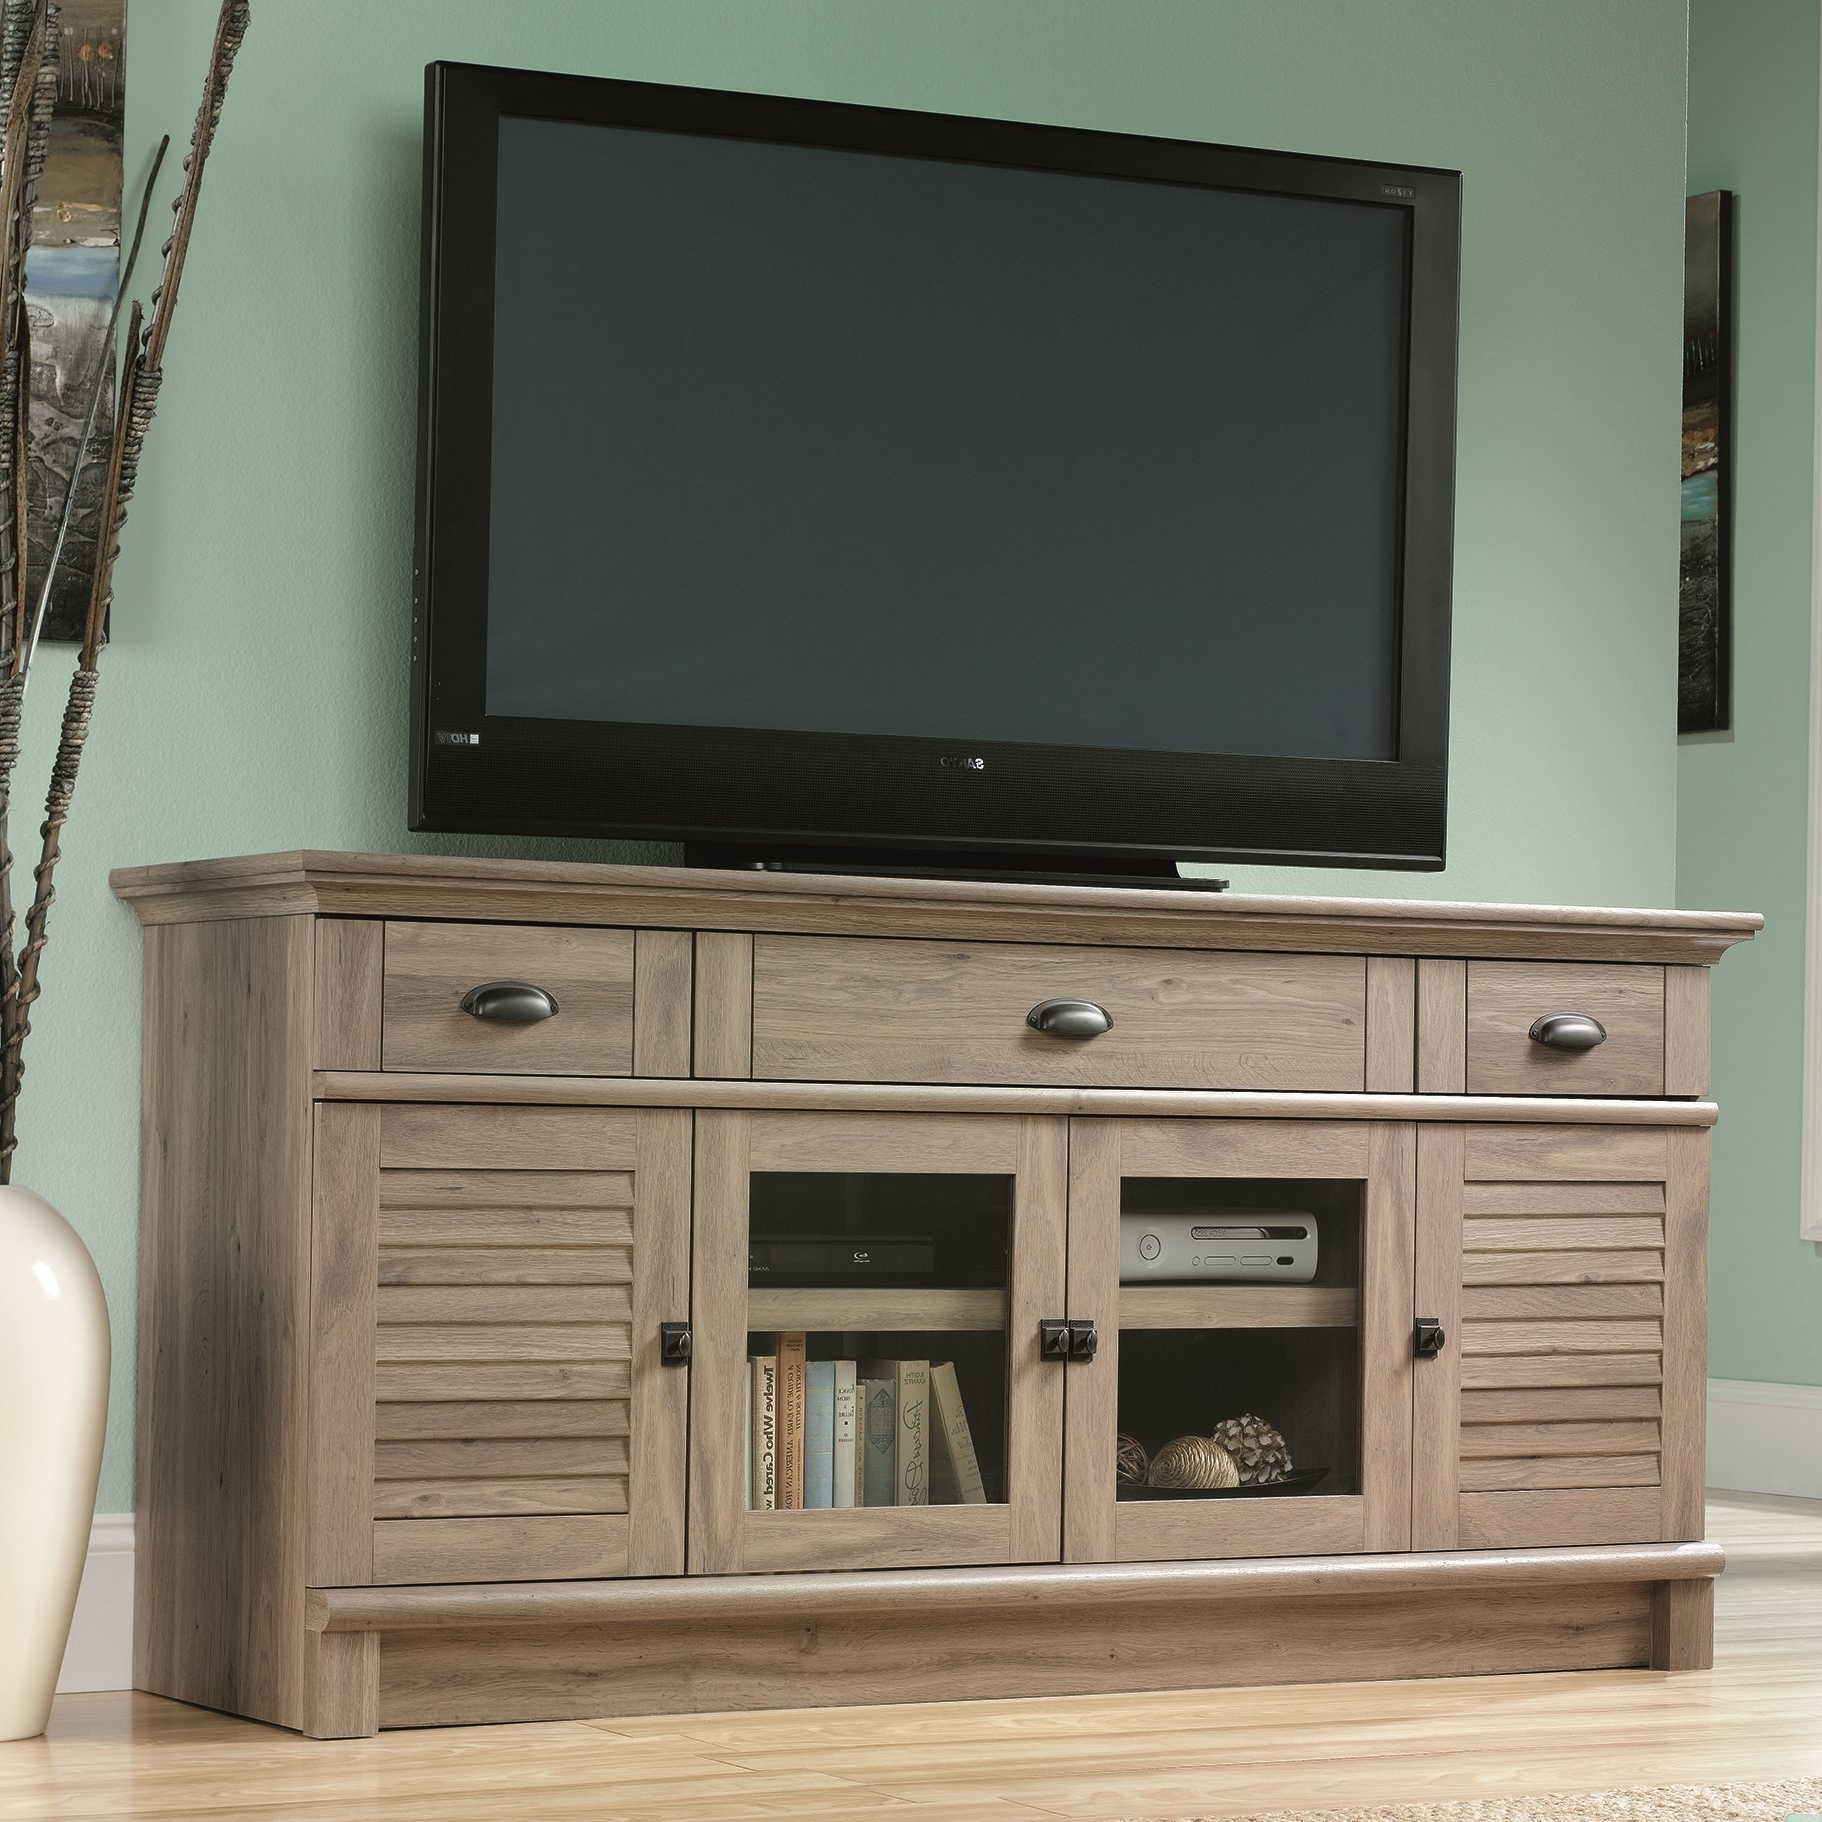 Edwin Grey 64 Inch Tv Stands Regarding Favorite 60 64 Inch Tv Stands (View 6 of 20)